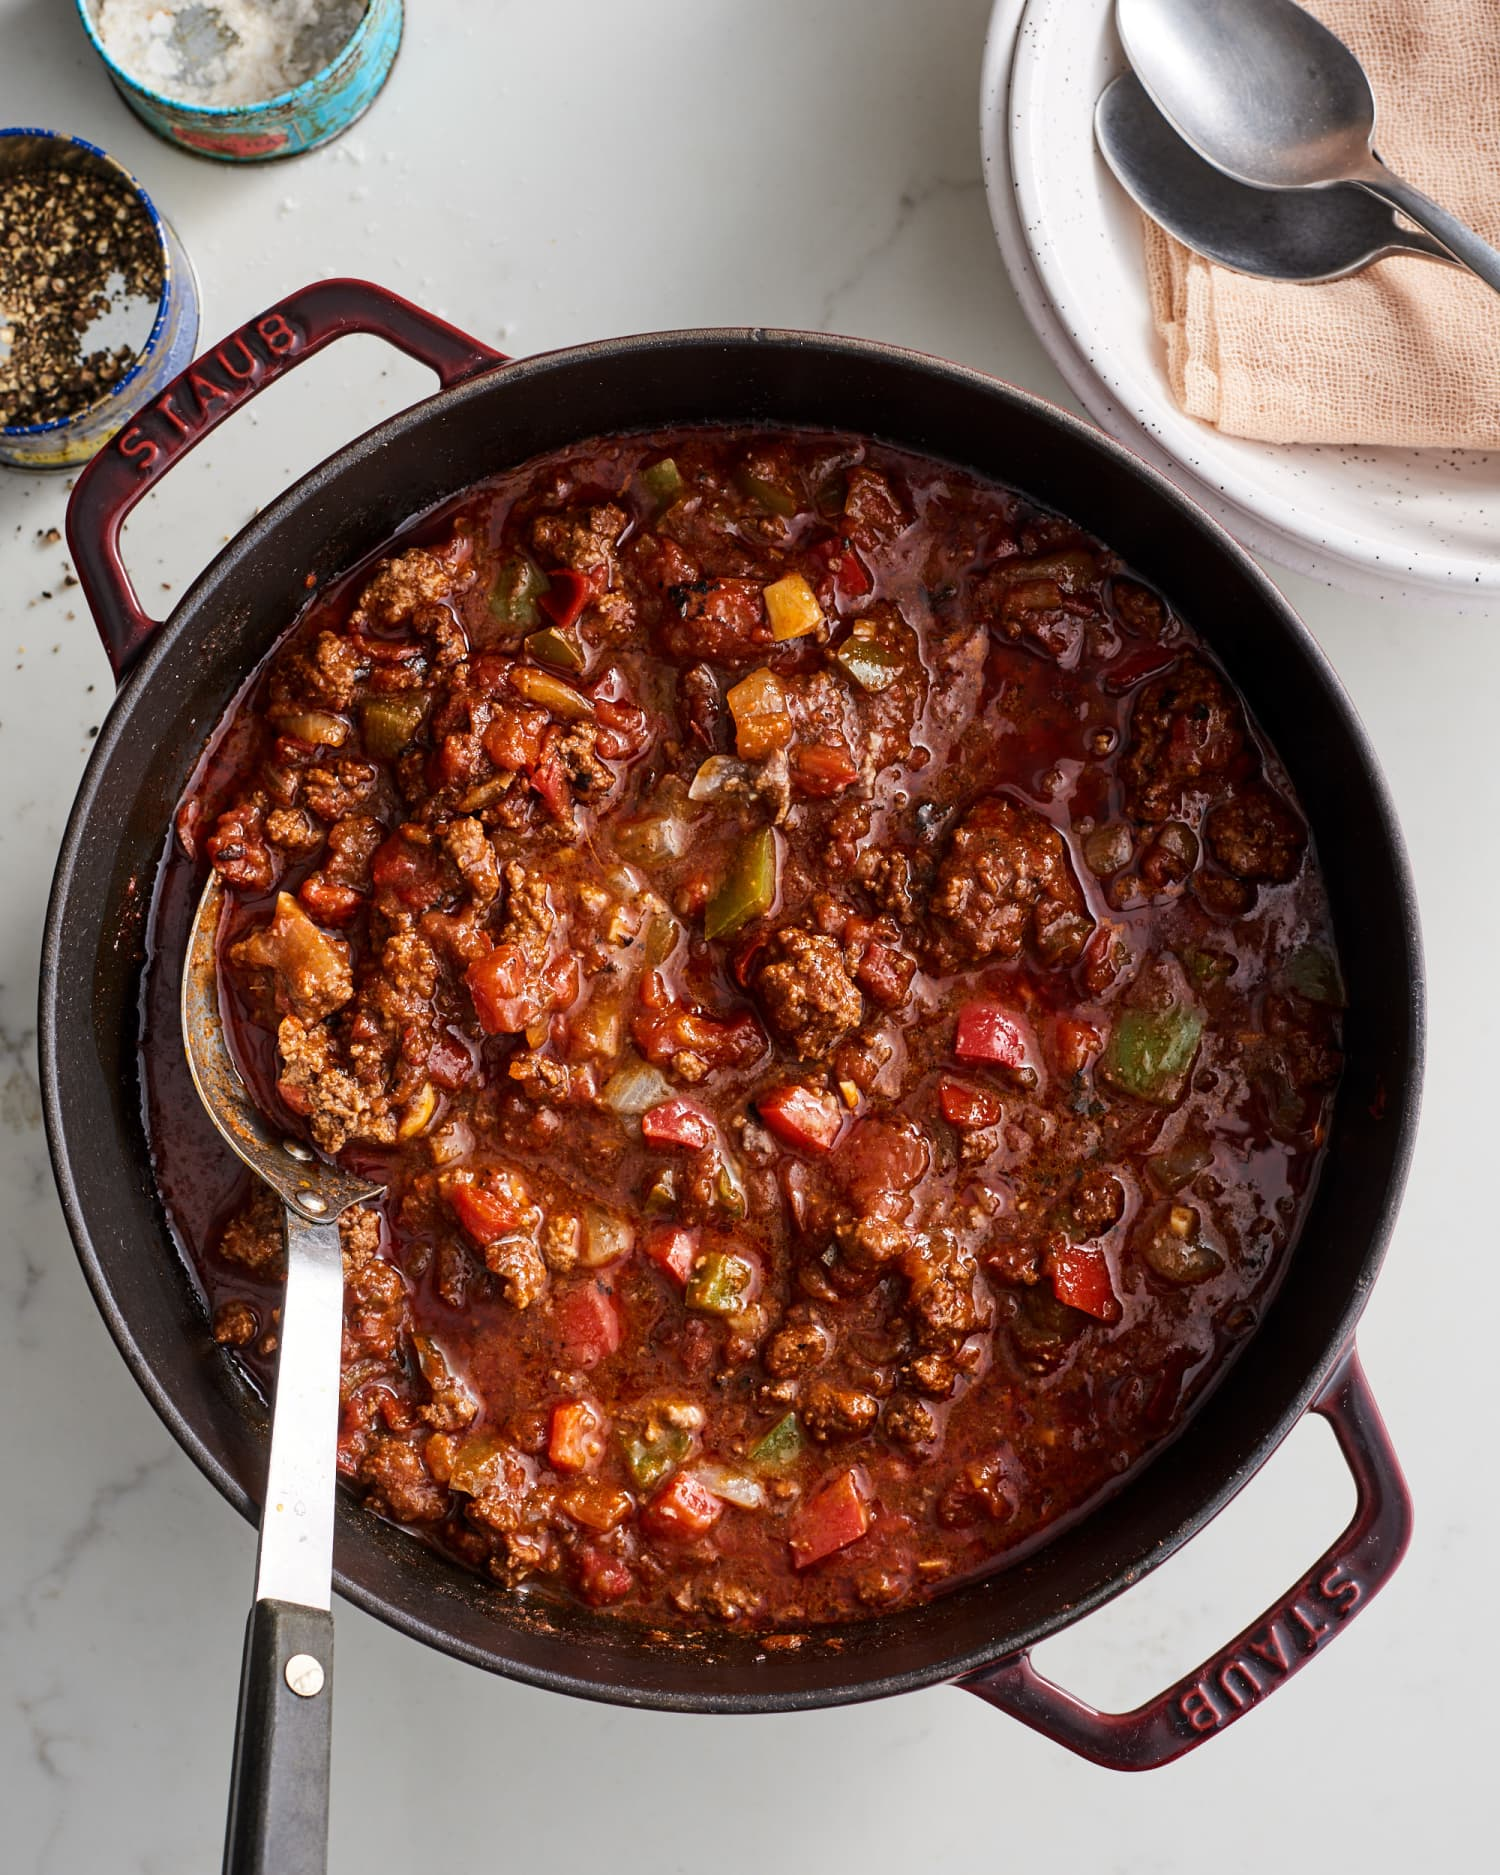 The Pantry Staple You Should Be Adding to Every Pot of Chili